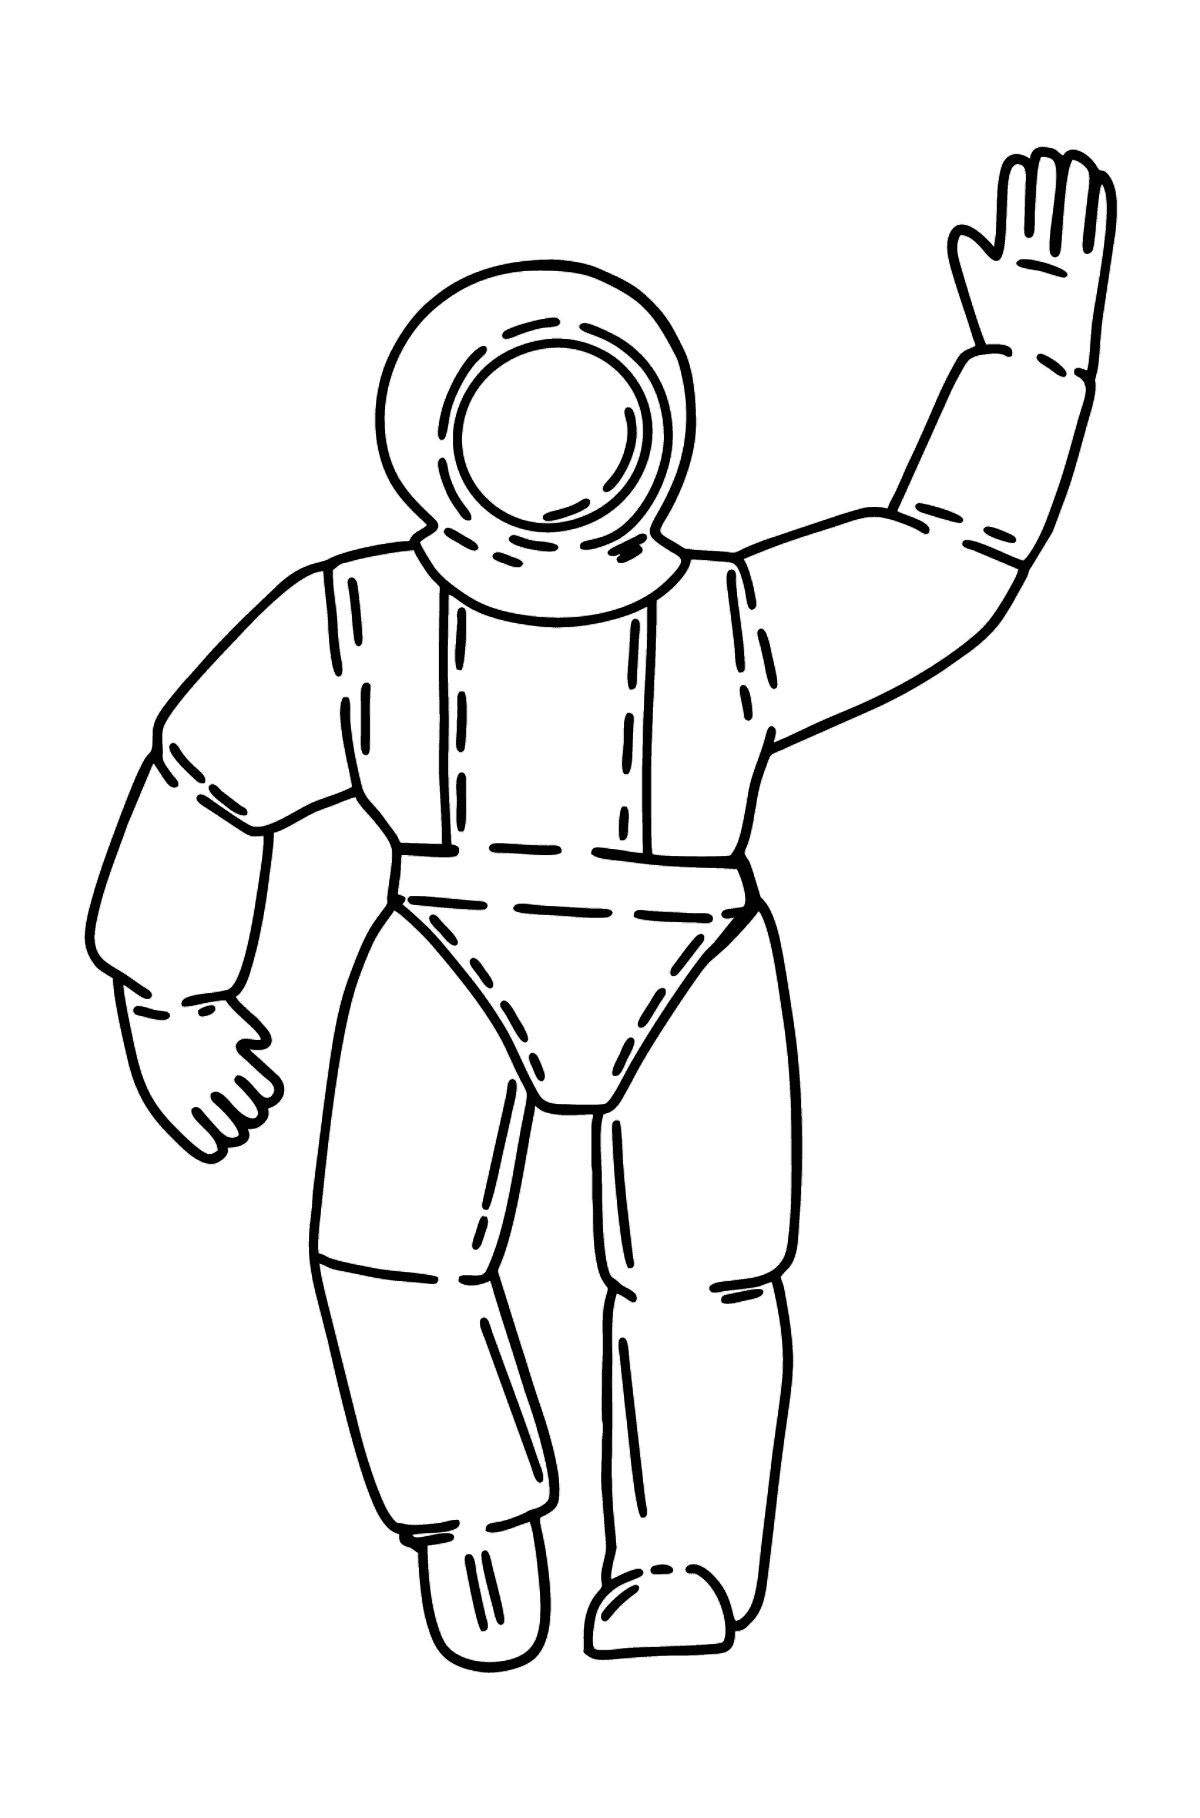 Astronaut coloring page - Coloring Pages for Kids